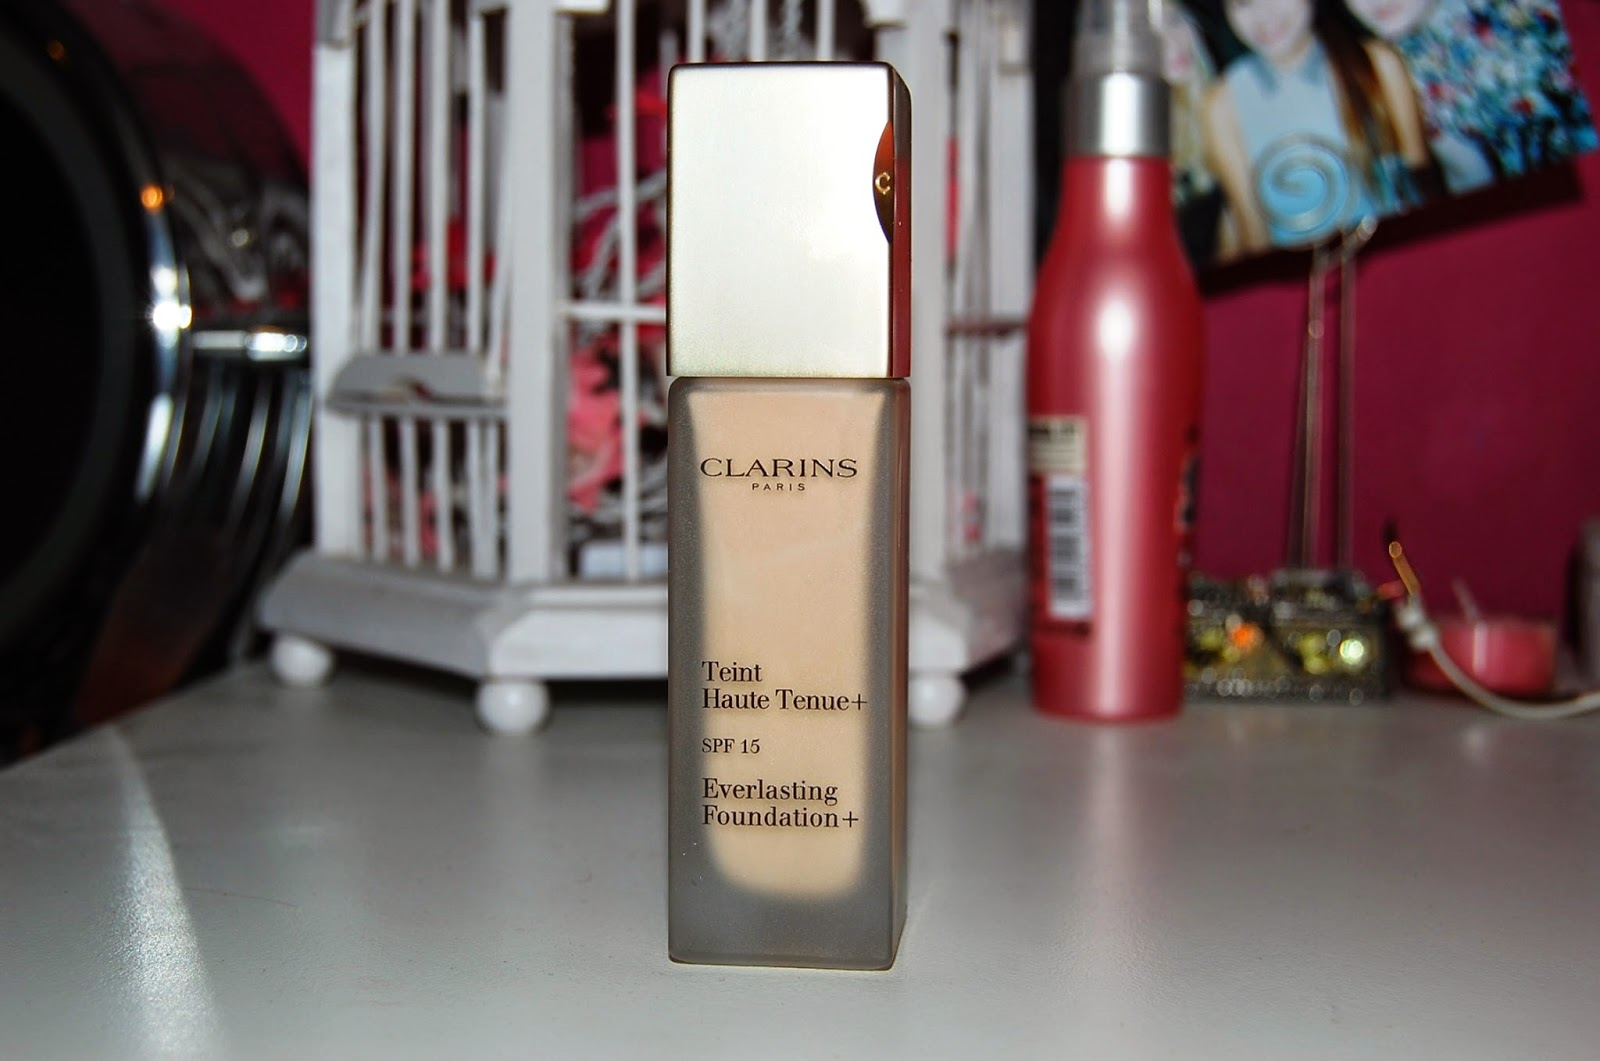 Clarins Everlasting+ foundation